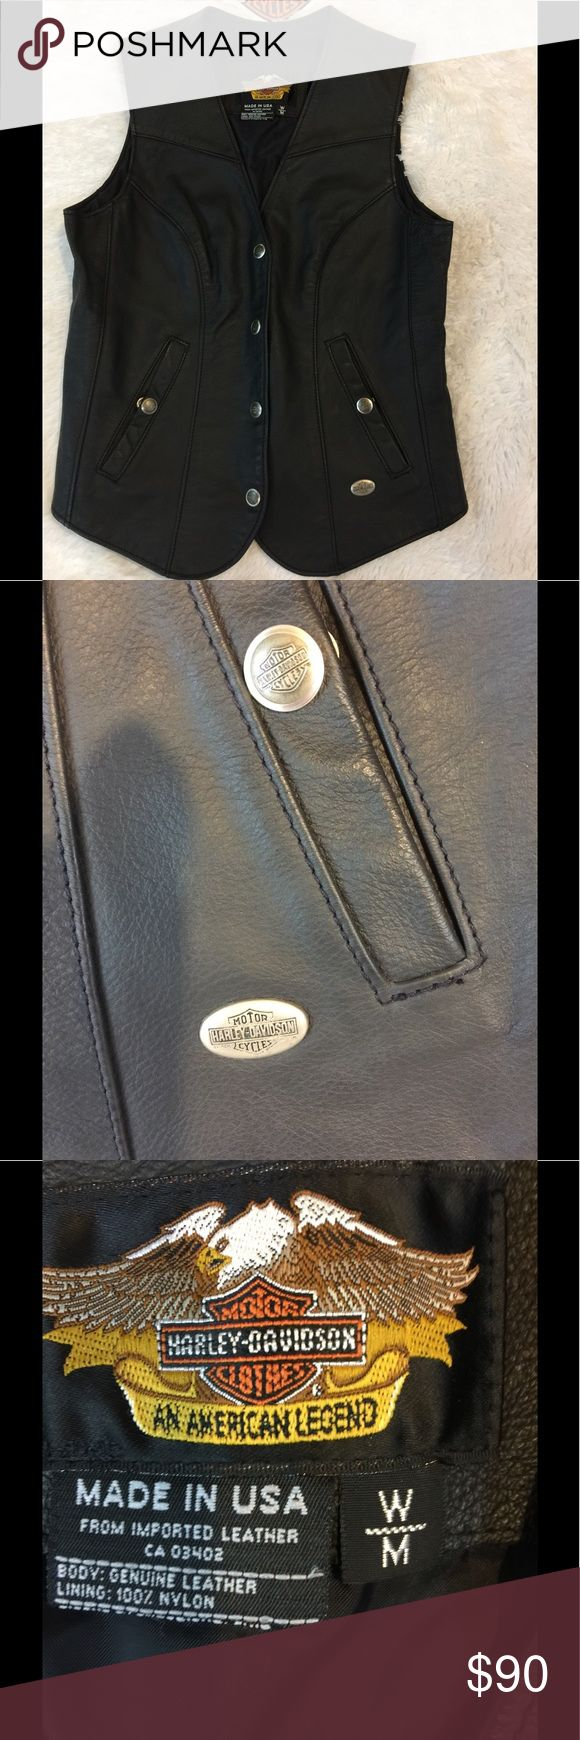 Women's Harley Davidson Leather Vest NWOT New with out tags, perfect condition women's Mall leather, black Harley Davidson Vest, just ready and waiting for your patches.  No pets/Smoke closet Harley-Davidson Jackets & Coats Vests